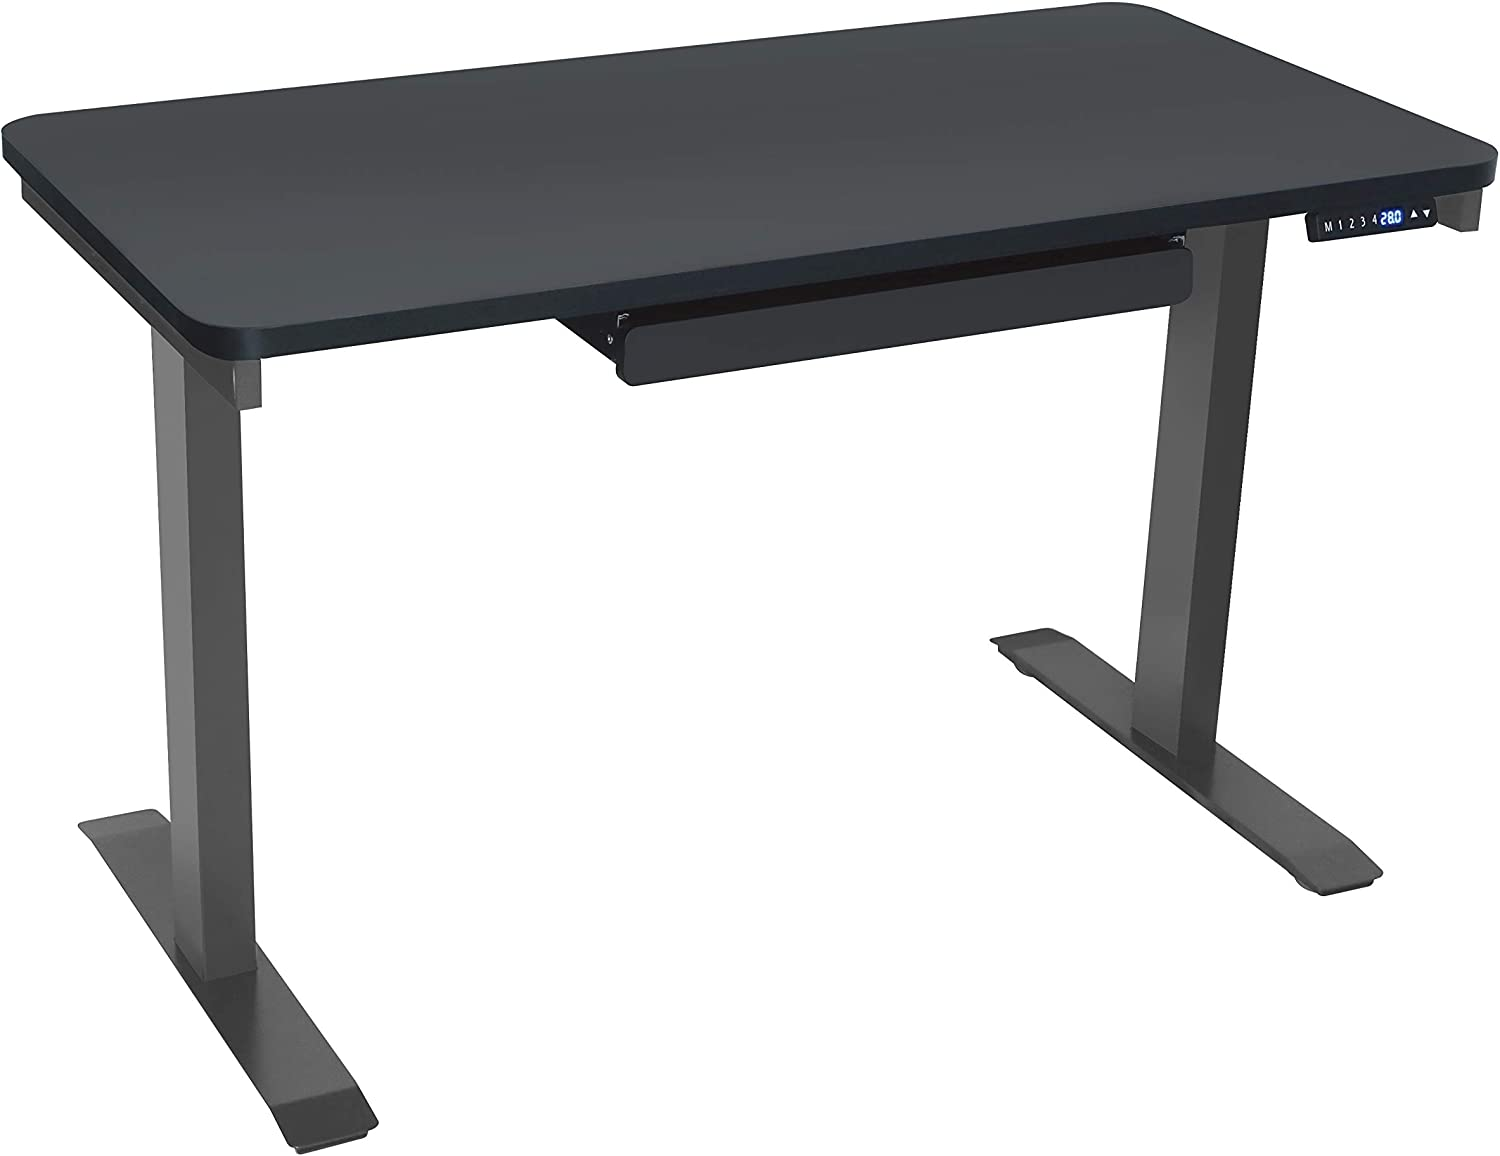 Motionwise Sdg48b Electric Standing Desk 24 X48 Home Office Series 28 48 With Quickly Program Up To 4 Pre Set Height Adjustments And Usb Charge Port Black Top With Light Grey Frame Amazon Ca Home